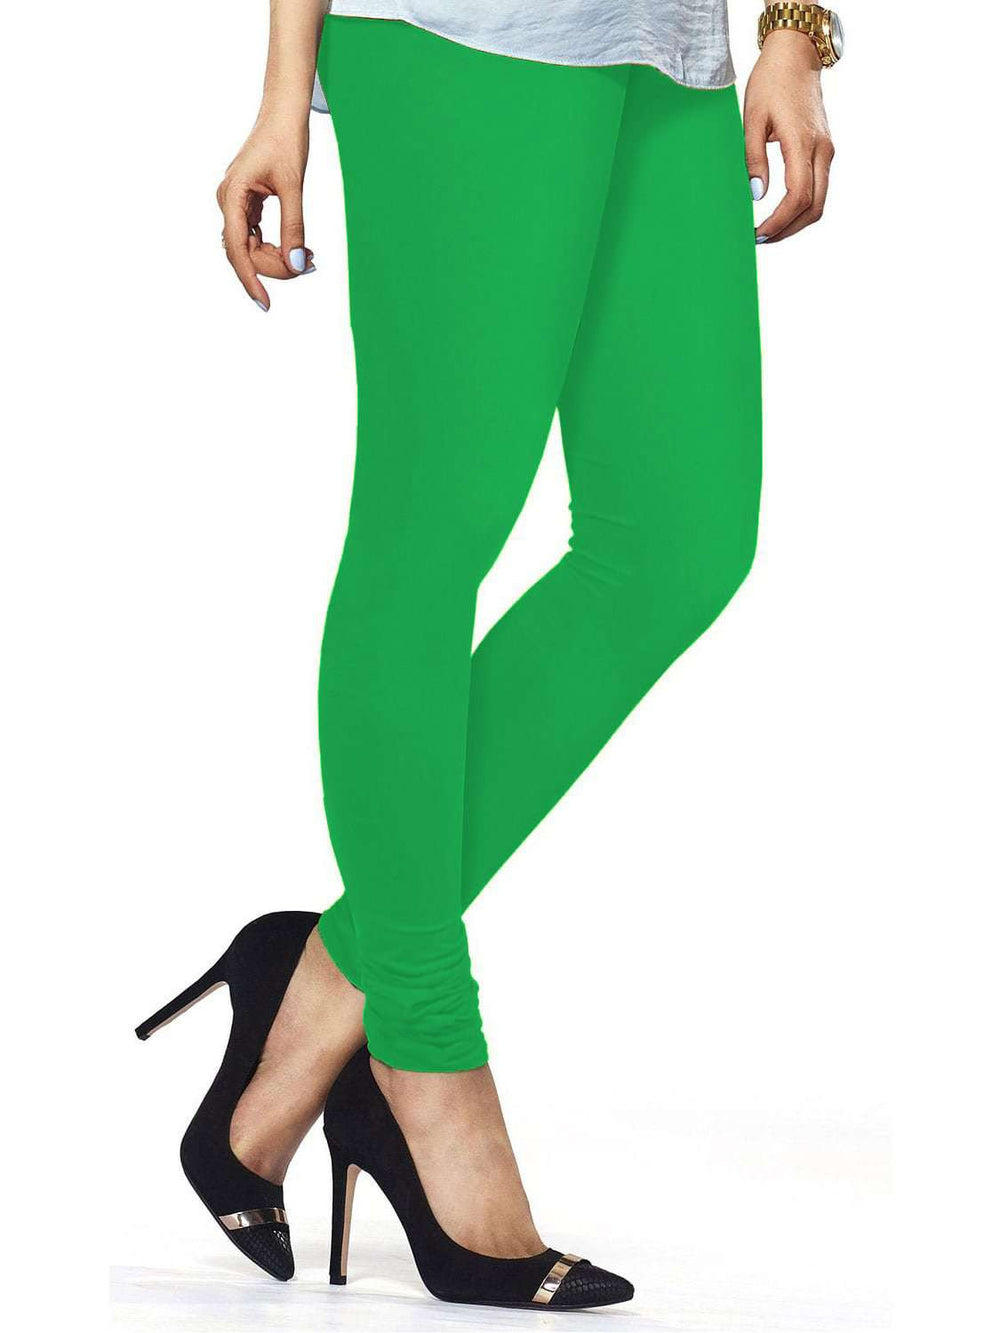 Cotton Lycra Churidar Free Size Forest Green Leggings